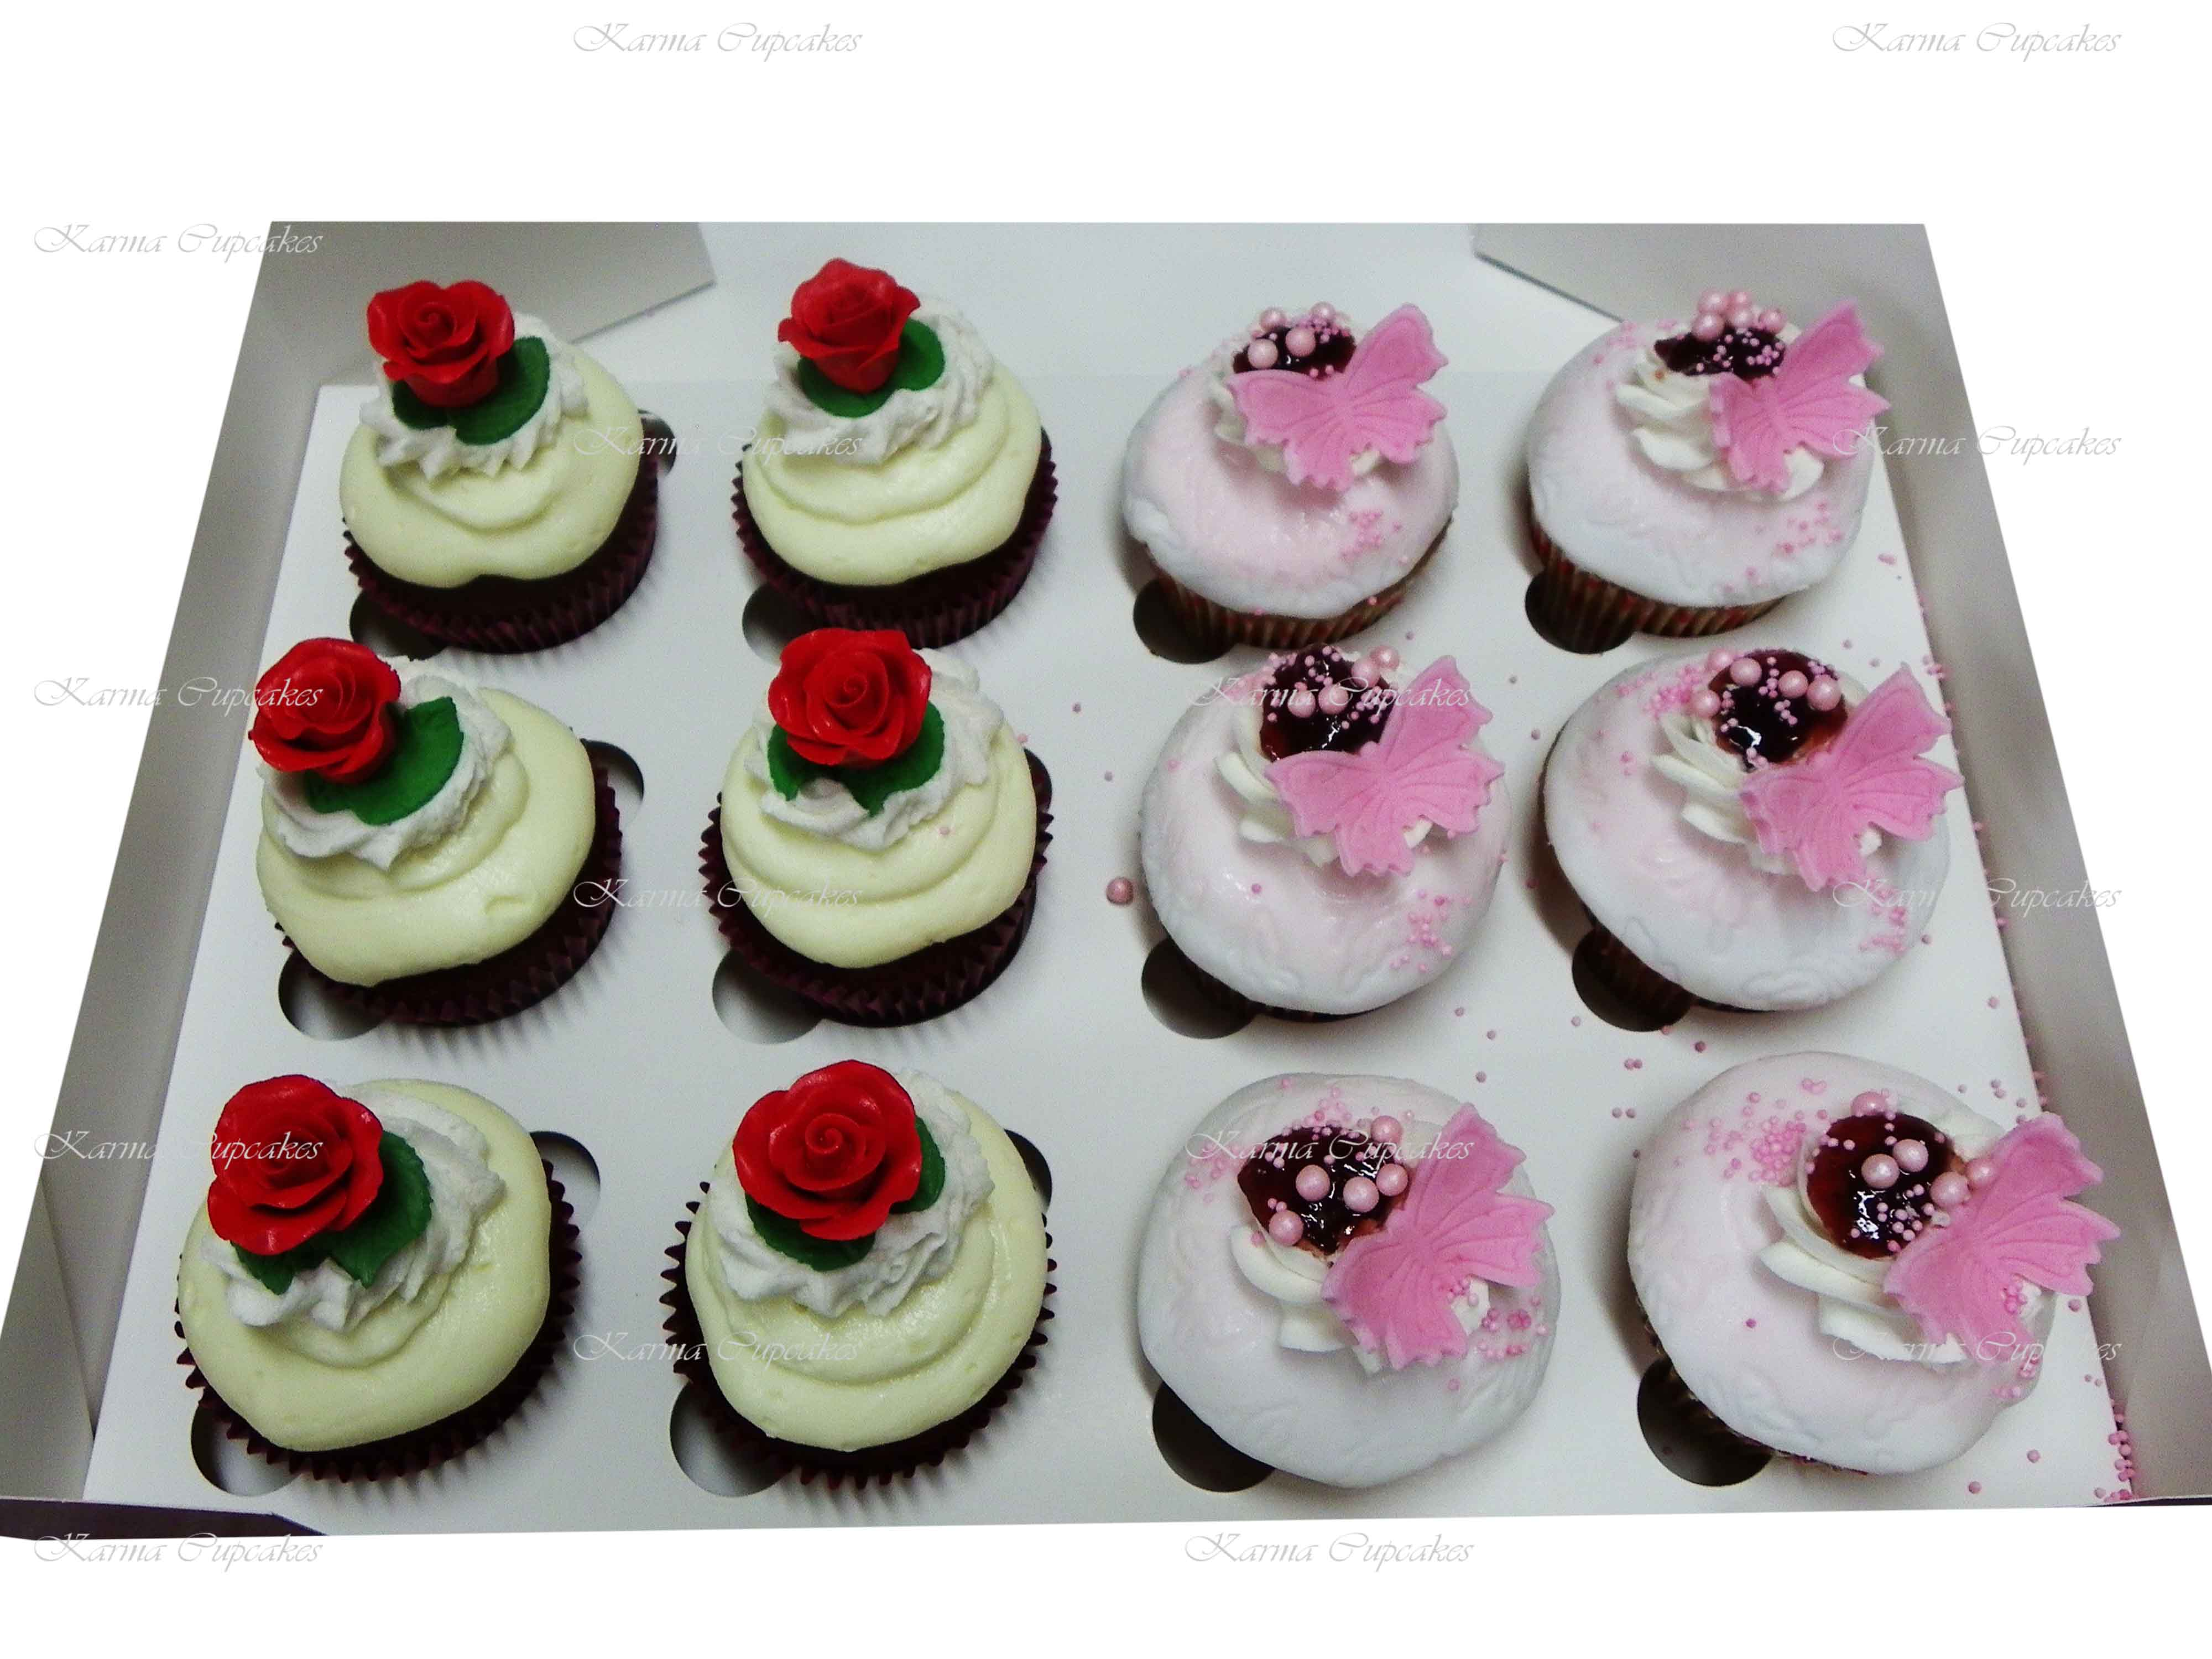 Butterfly and Handmade Roses Cupcakes